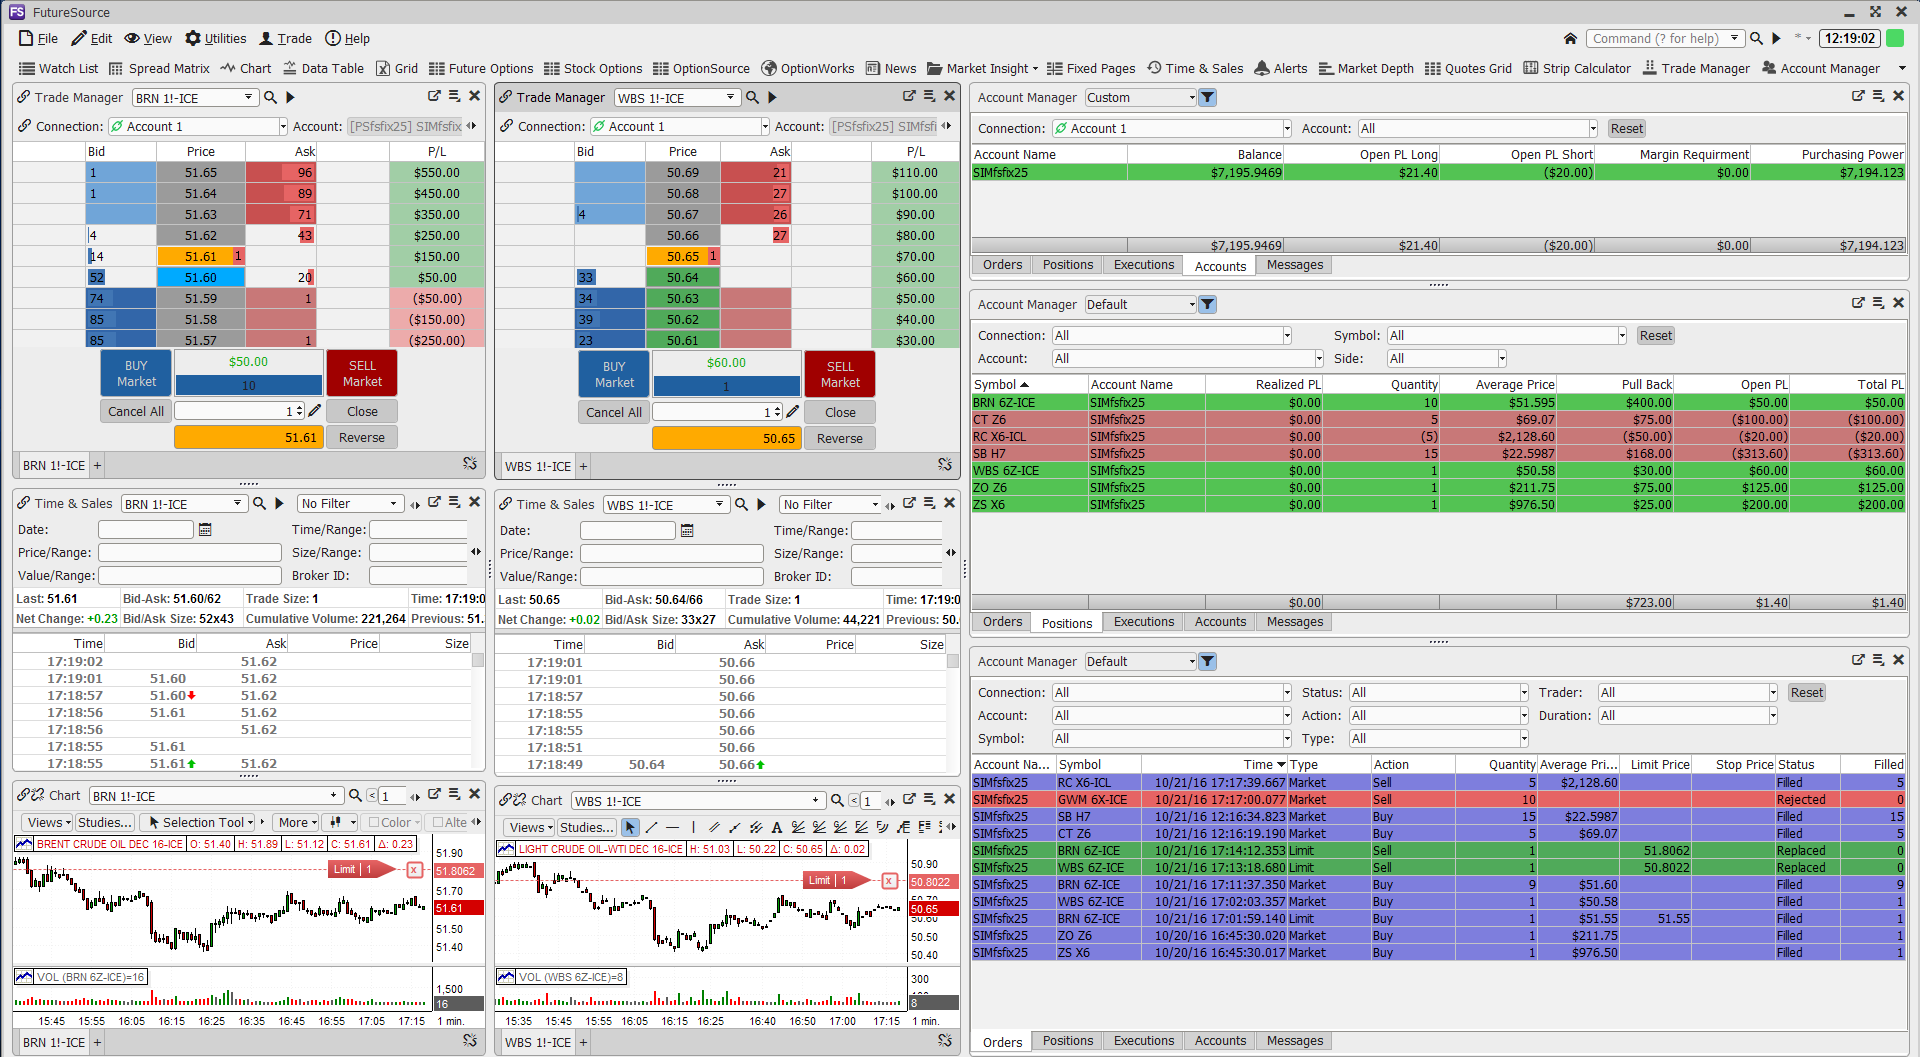 Real Time Futures Quotes Ice Futuresource Realtime Market Data For Commodities